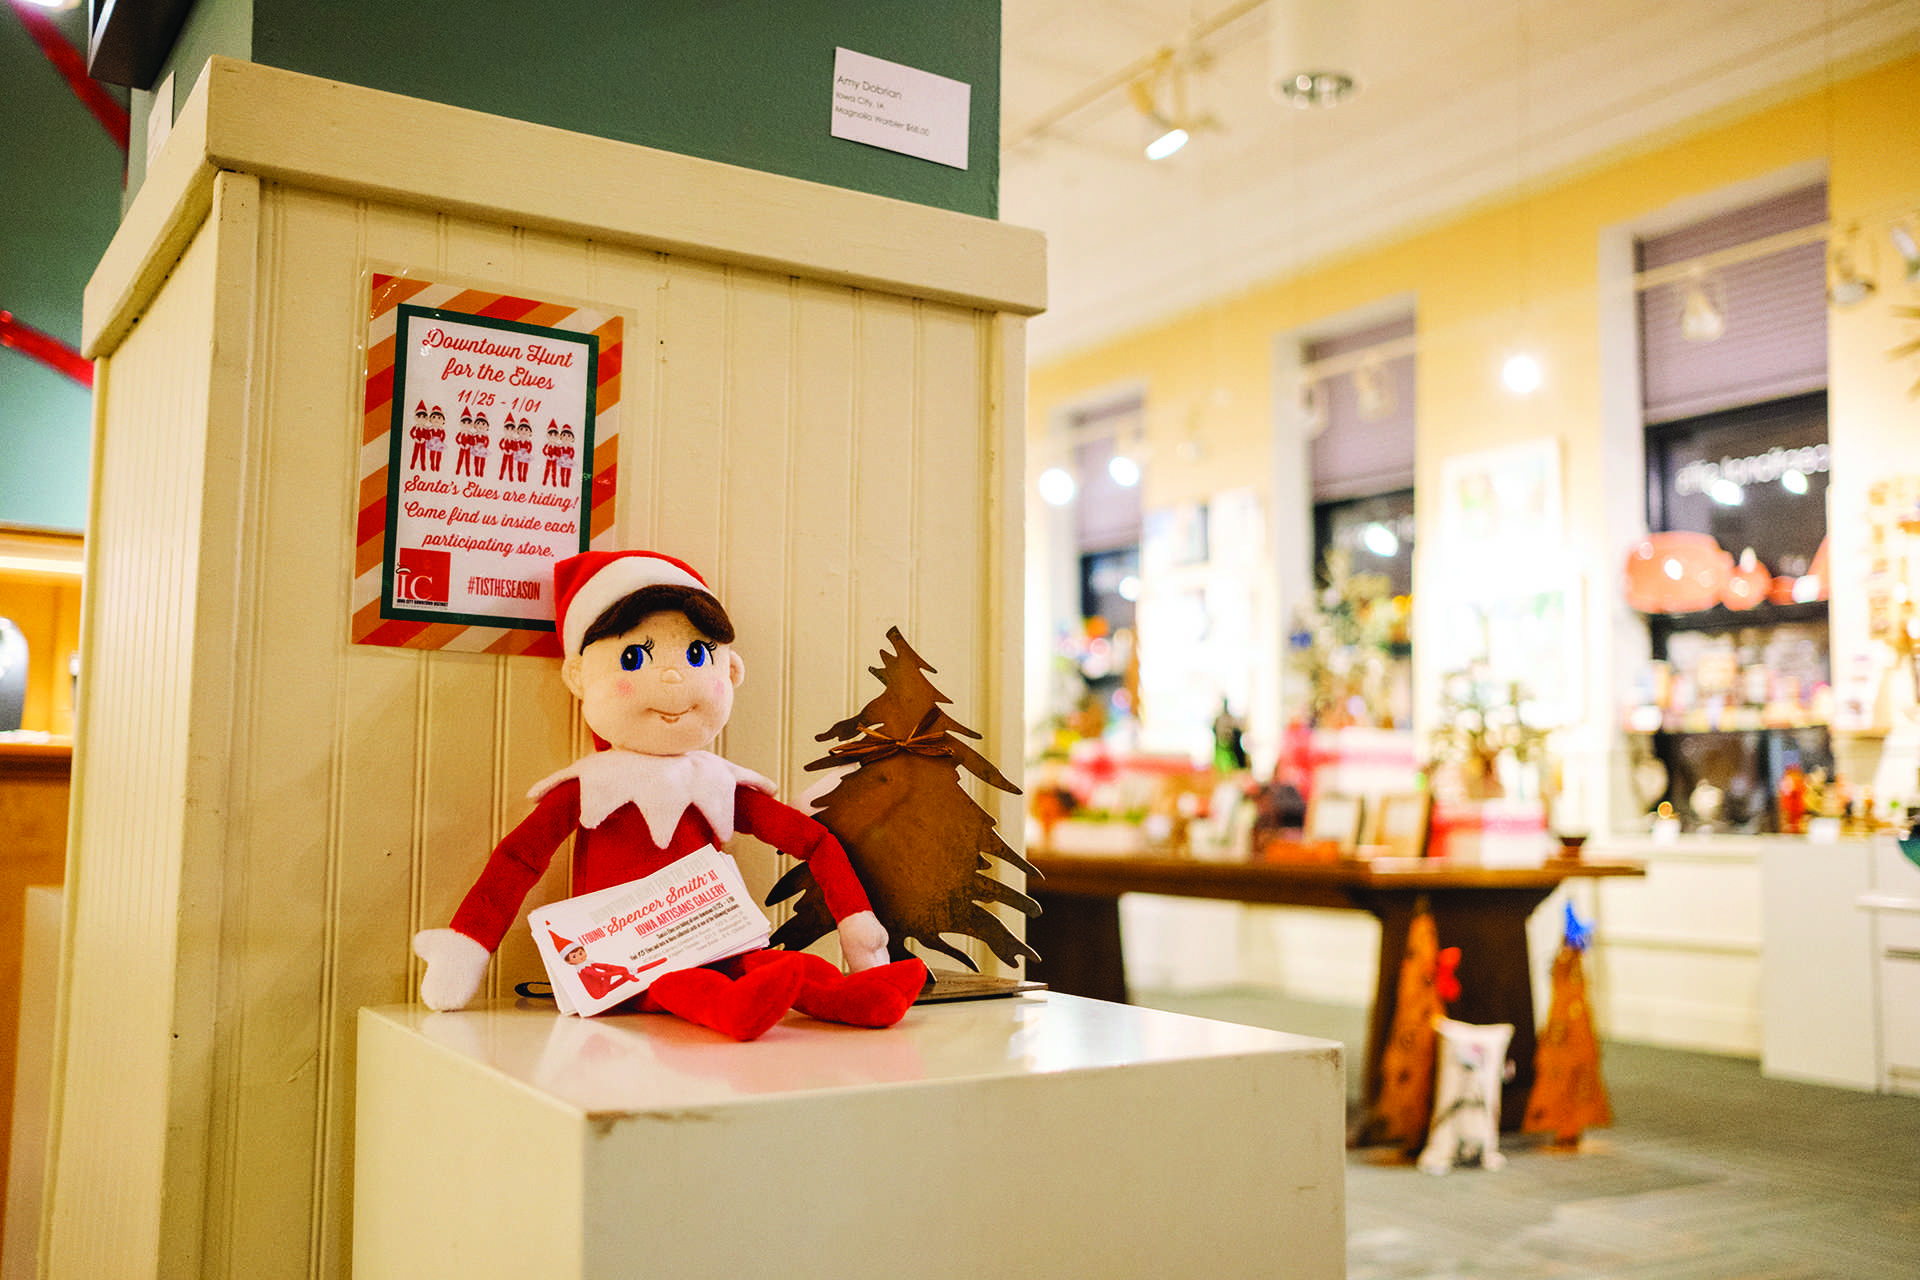 Spencer Smith the elf is seen at the Iowa Artisans Gallery in Iowa City on Monday, Dec. 4, 2017. The Iowa City Downtown District has organized an elf scavenger hunt at downtown businesses. (Nick Rohlman/The Daily Iowan)